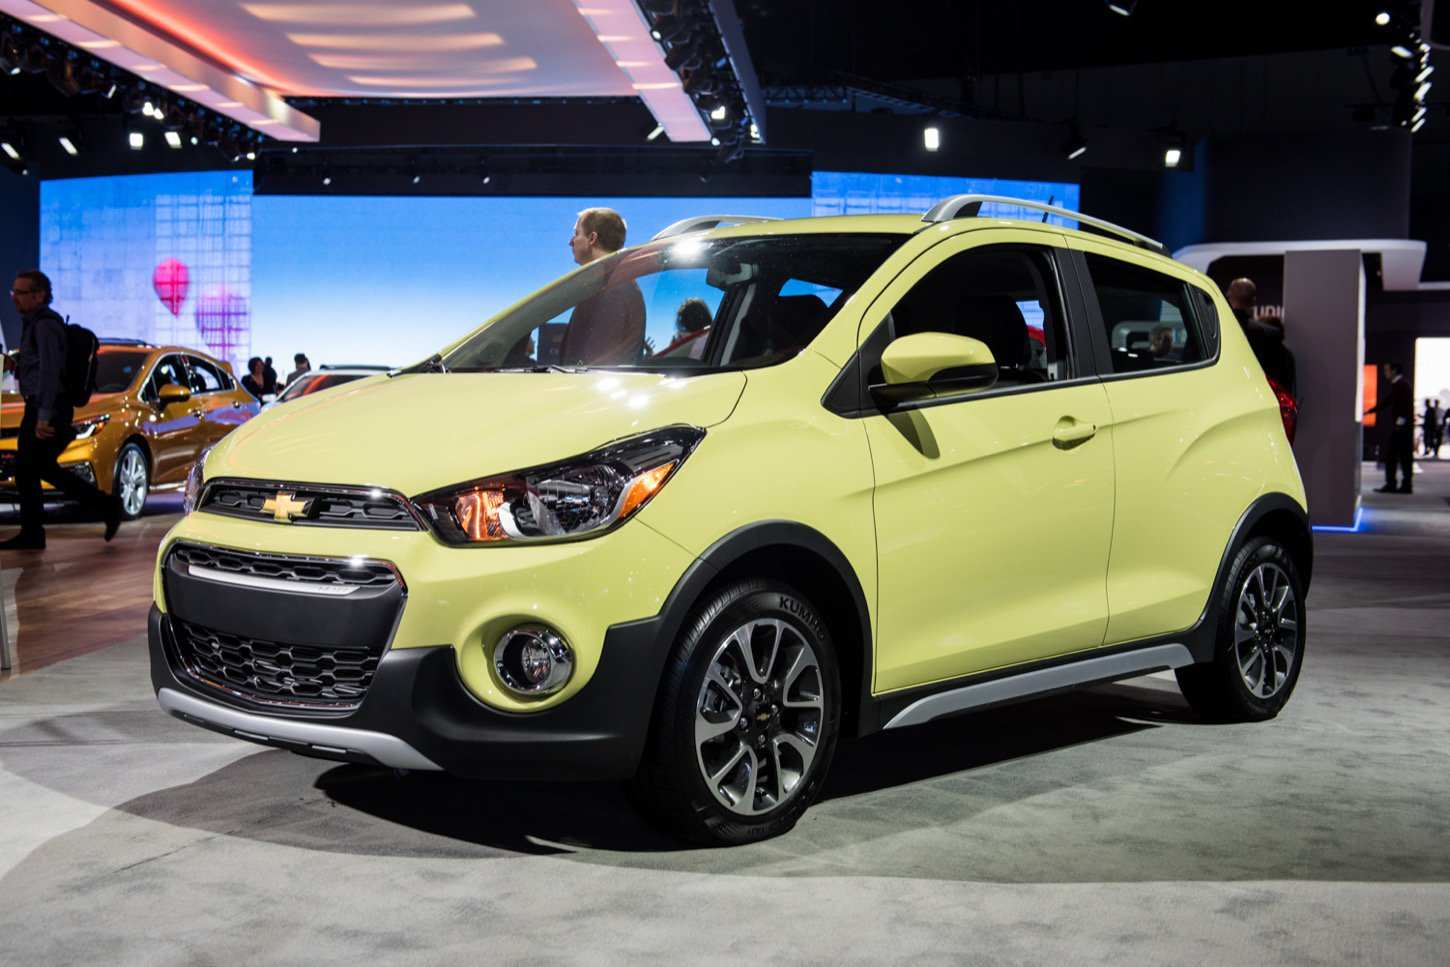 32 All New 2019 Chevrolet Spark First Drive